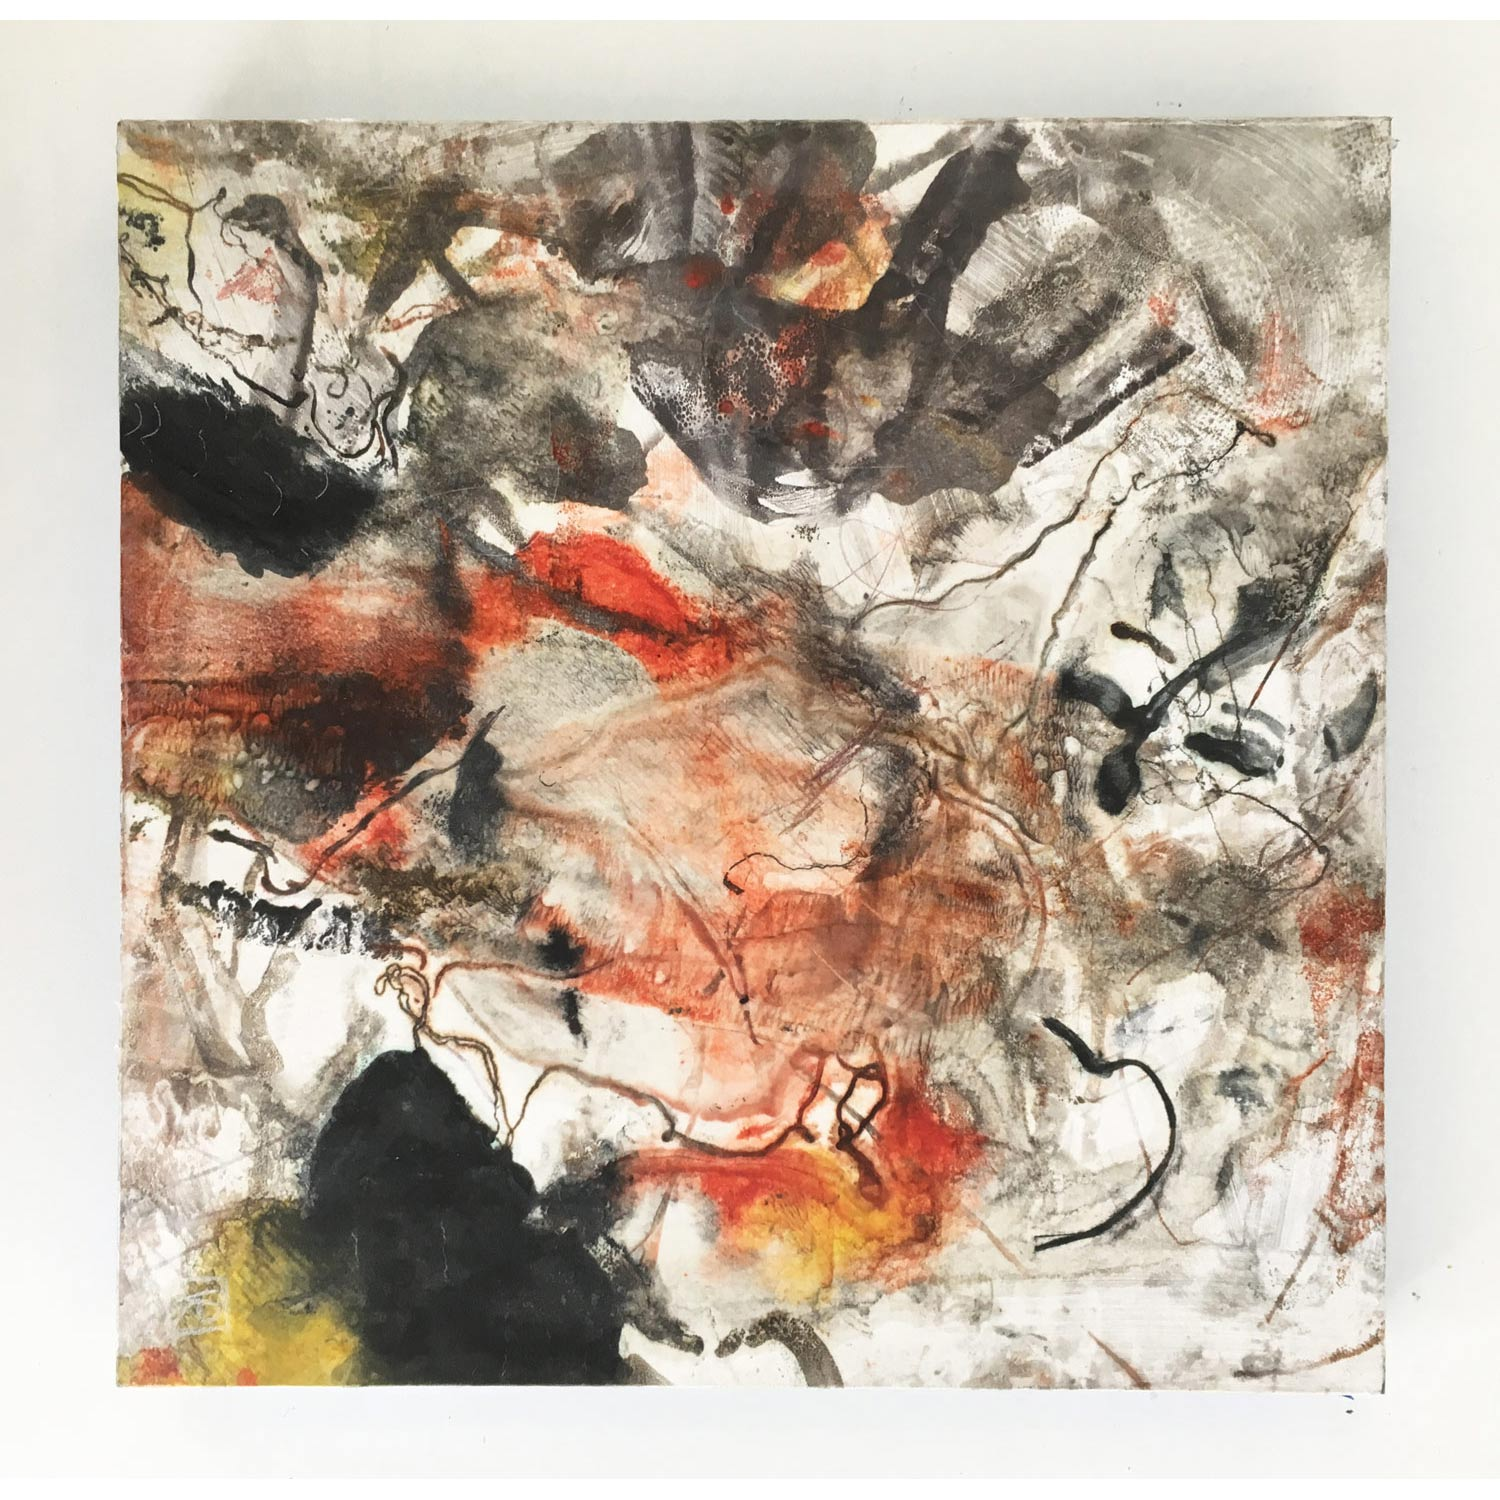 Burrowing  $640 Encaustic monotype on Kozo paper, mounted on cradled panel, 30 x 30cm   Enquire